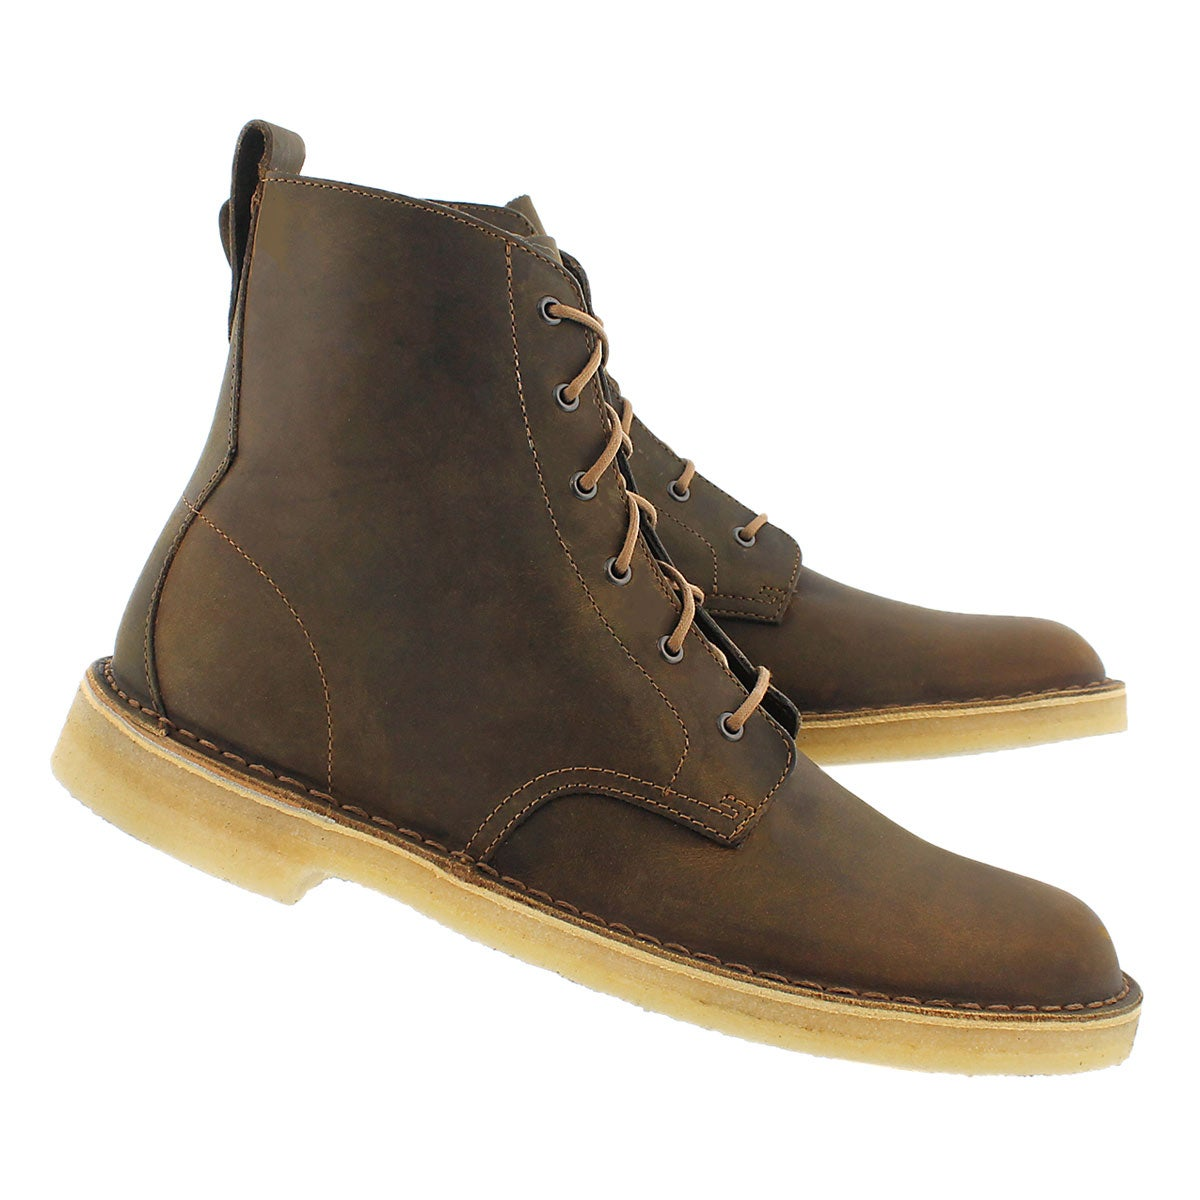 Mns Desert Mali beeswax ankle boot